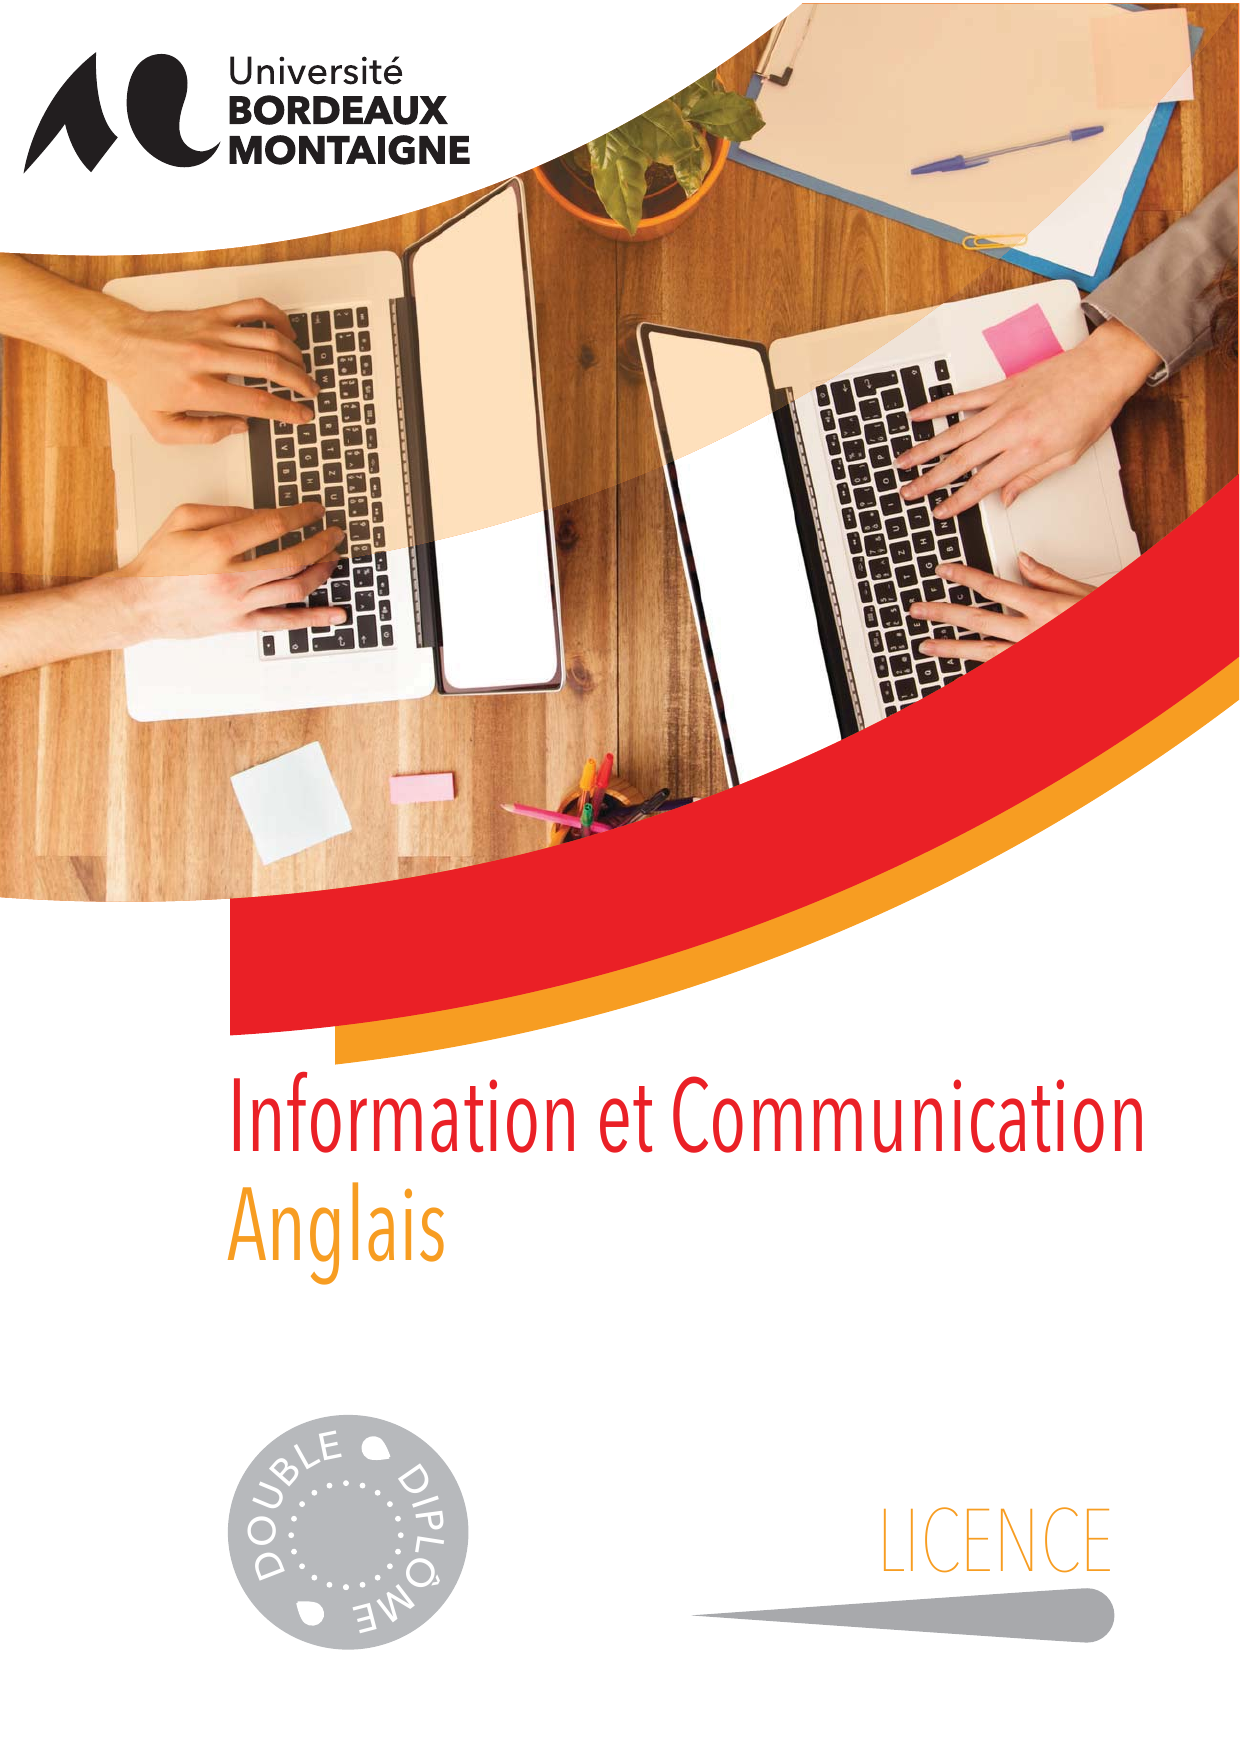 licence 2 information communication - anglais